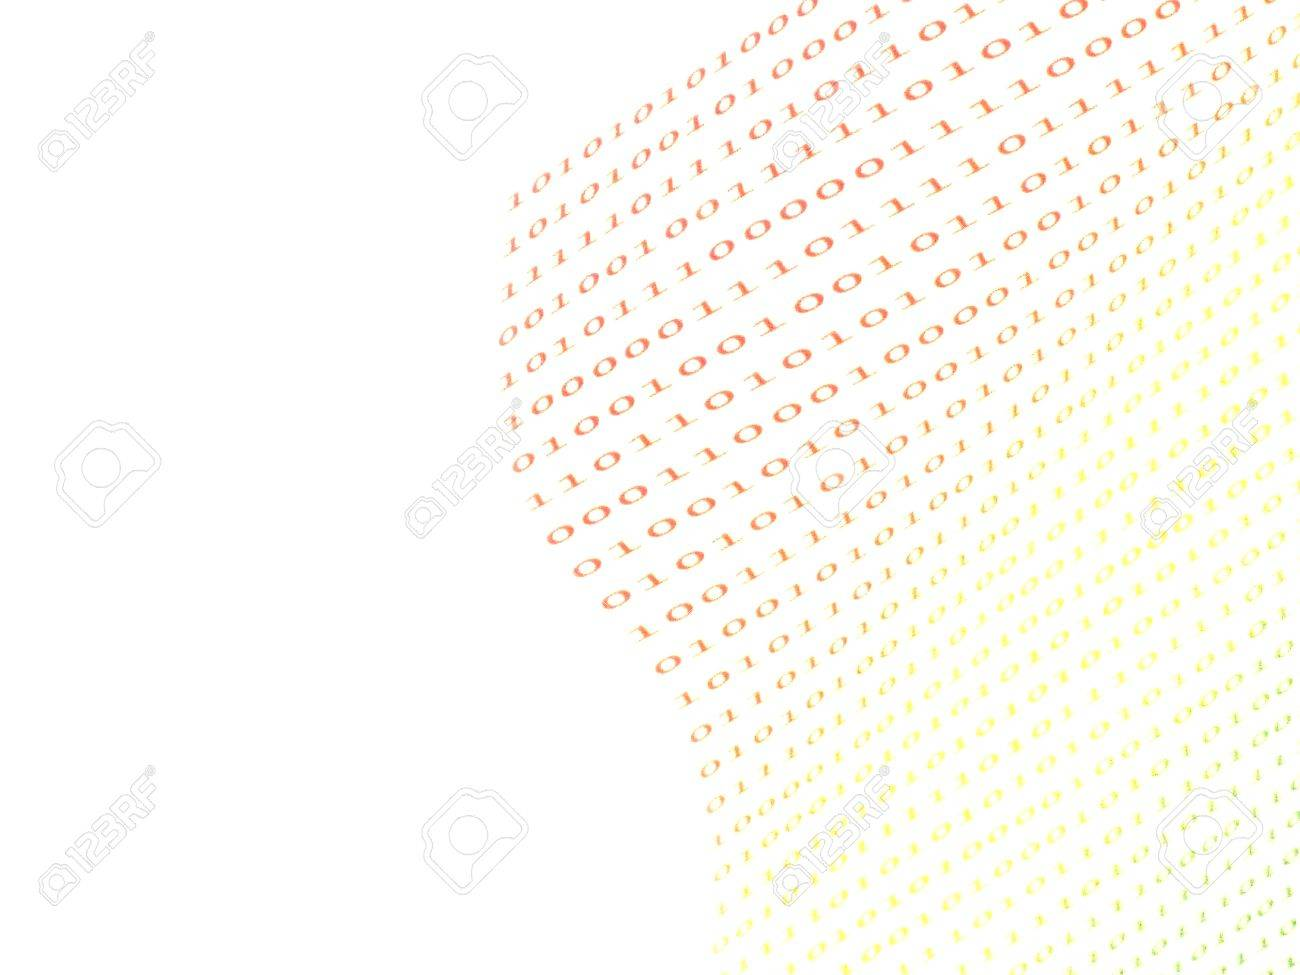 binary numbers on white background Stock Photo - 11463788